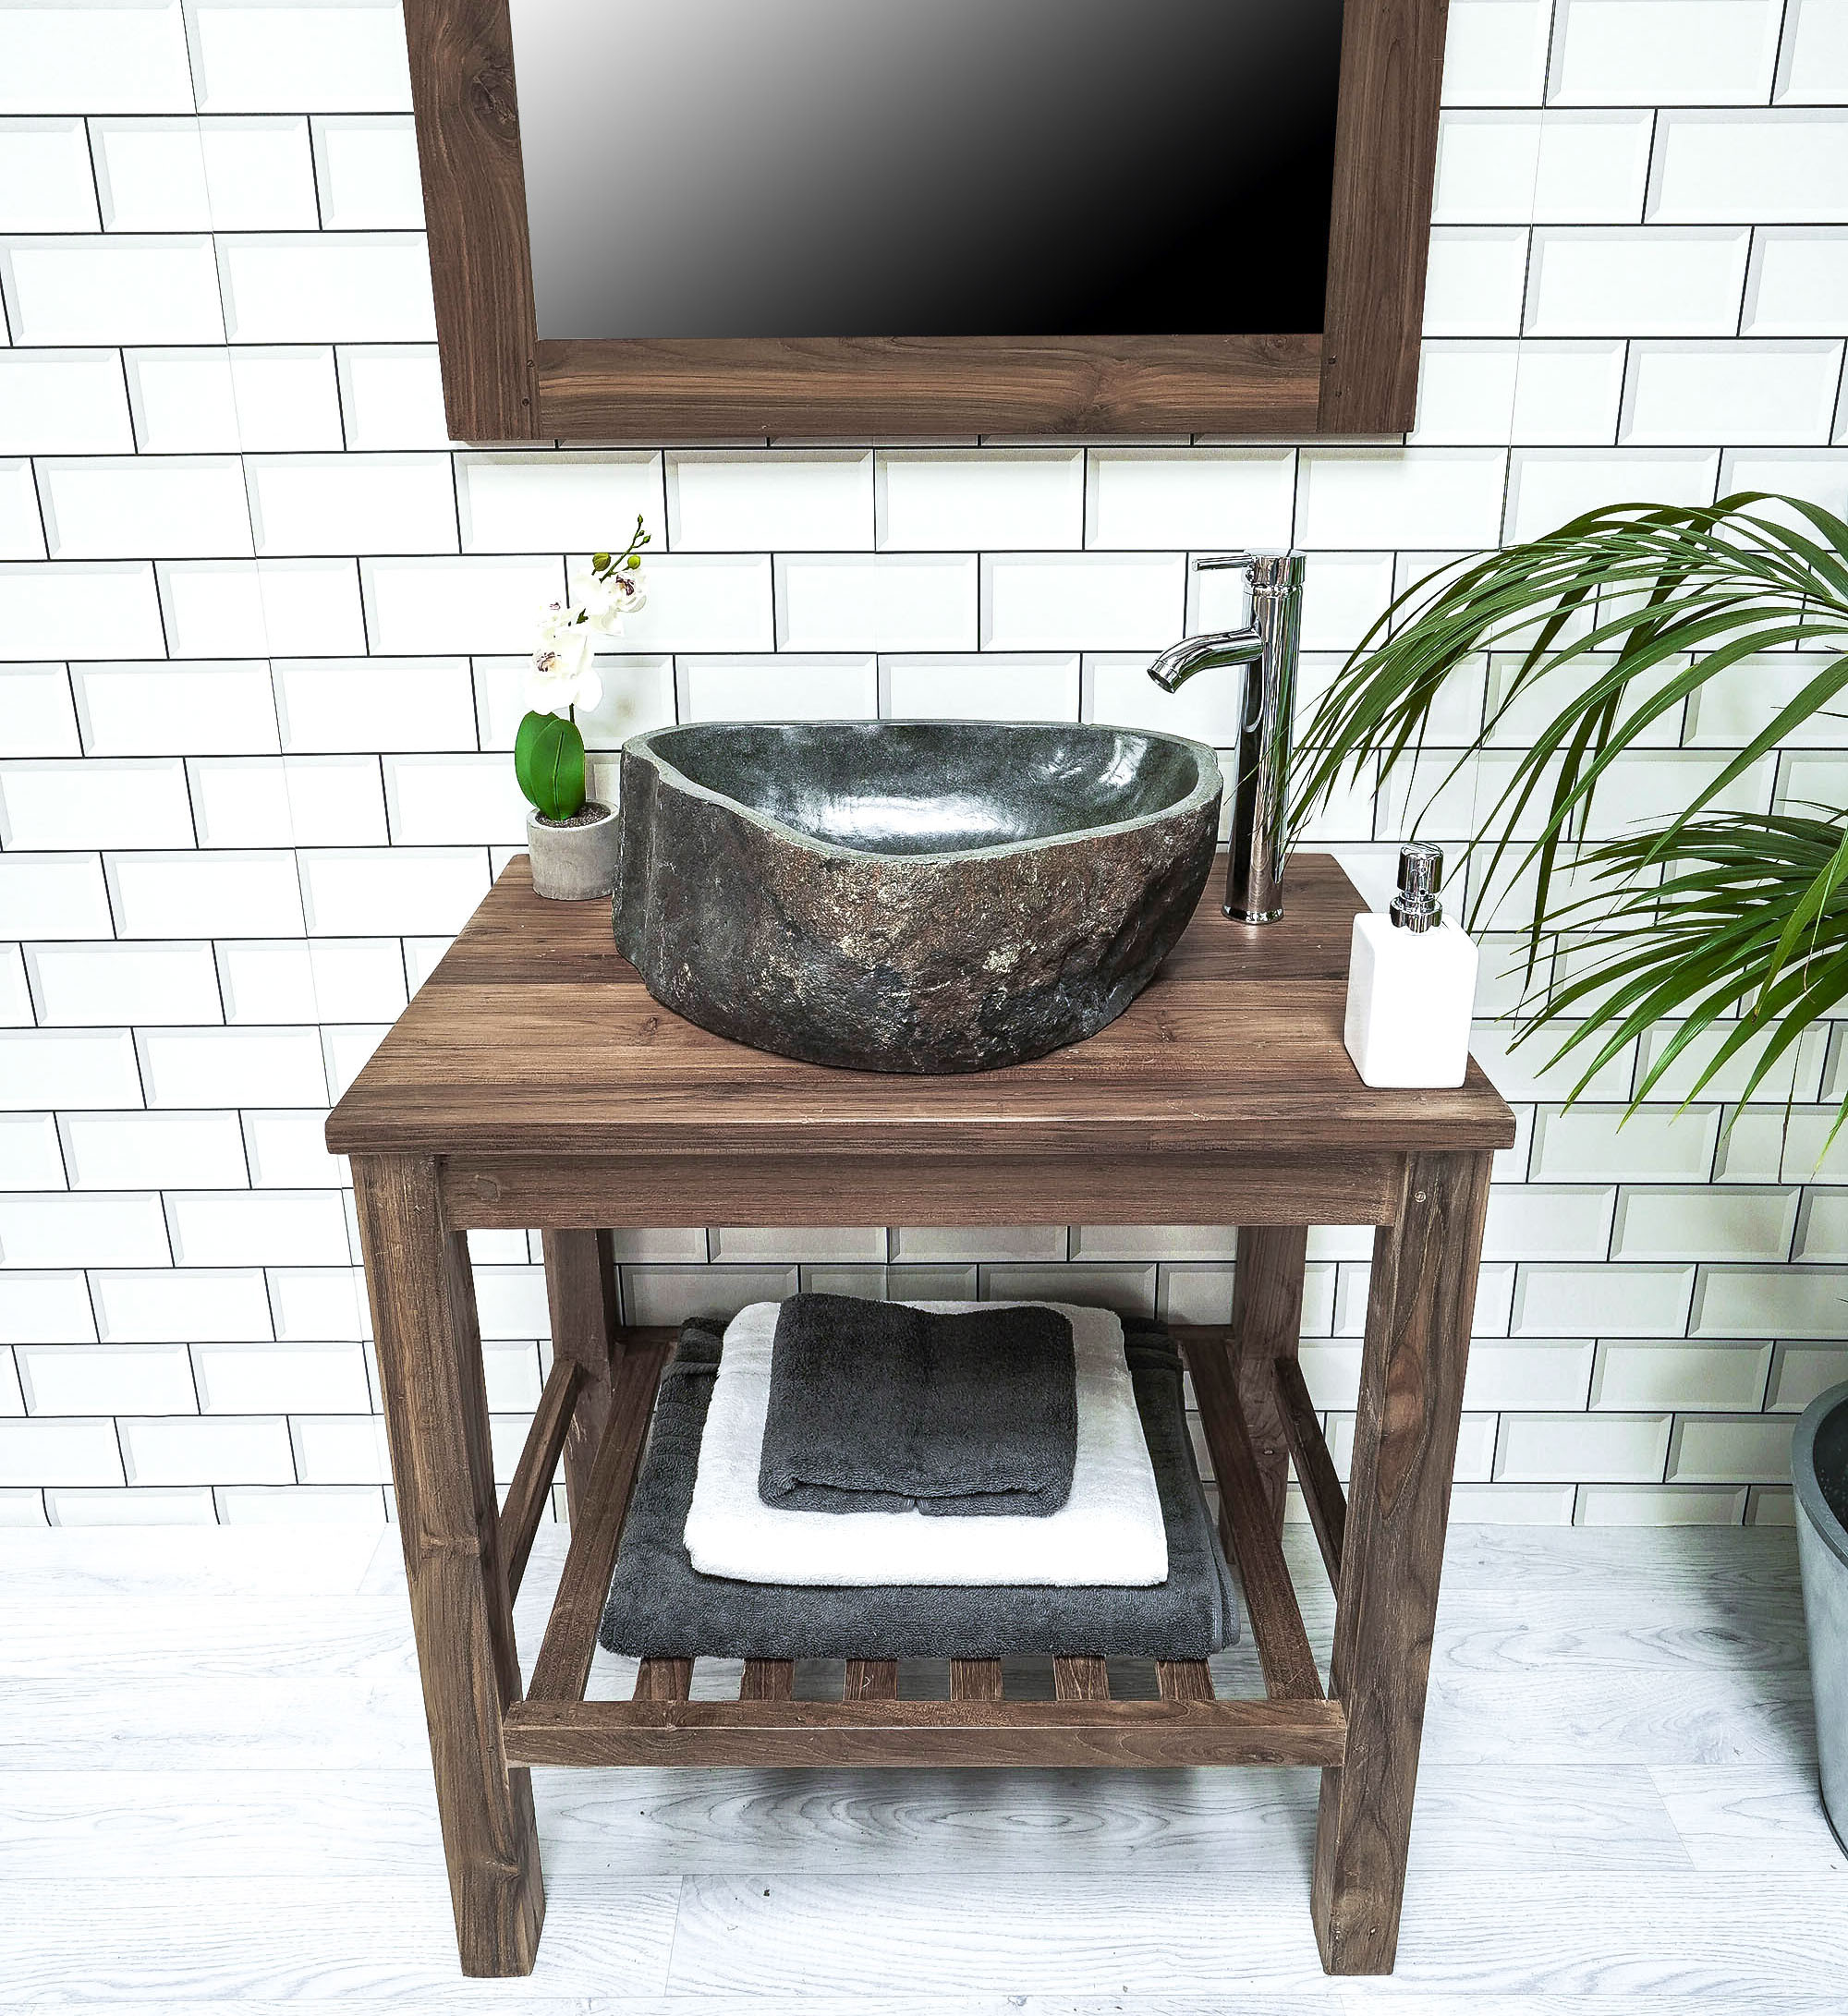 kerembong washstand to use ombak final